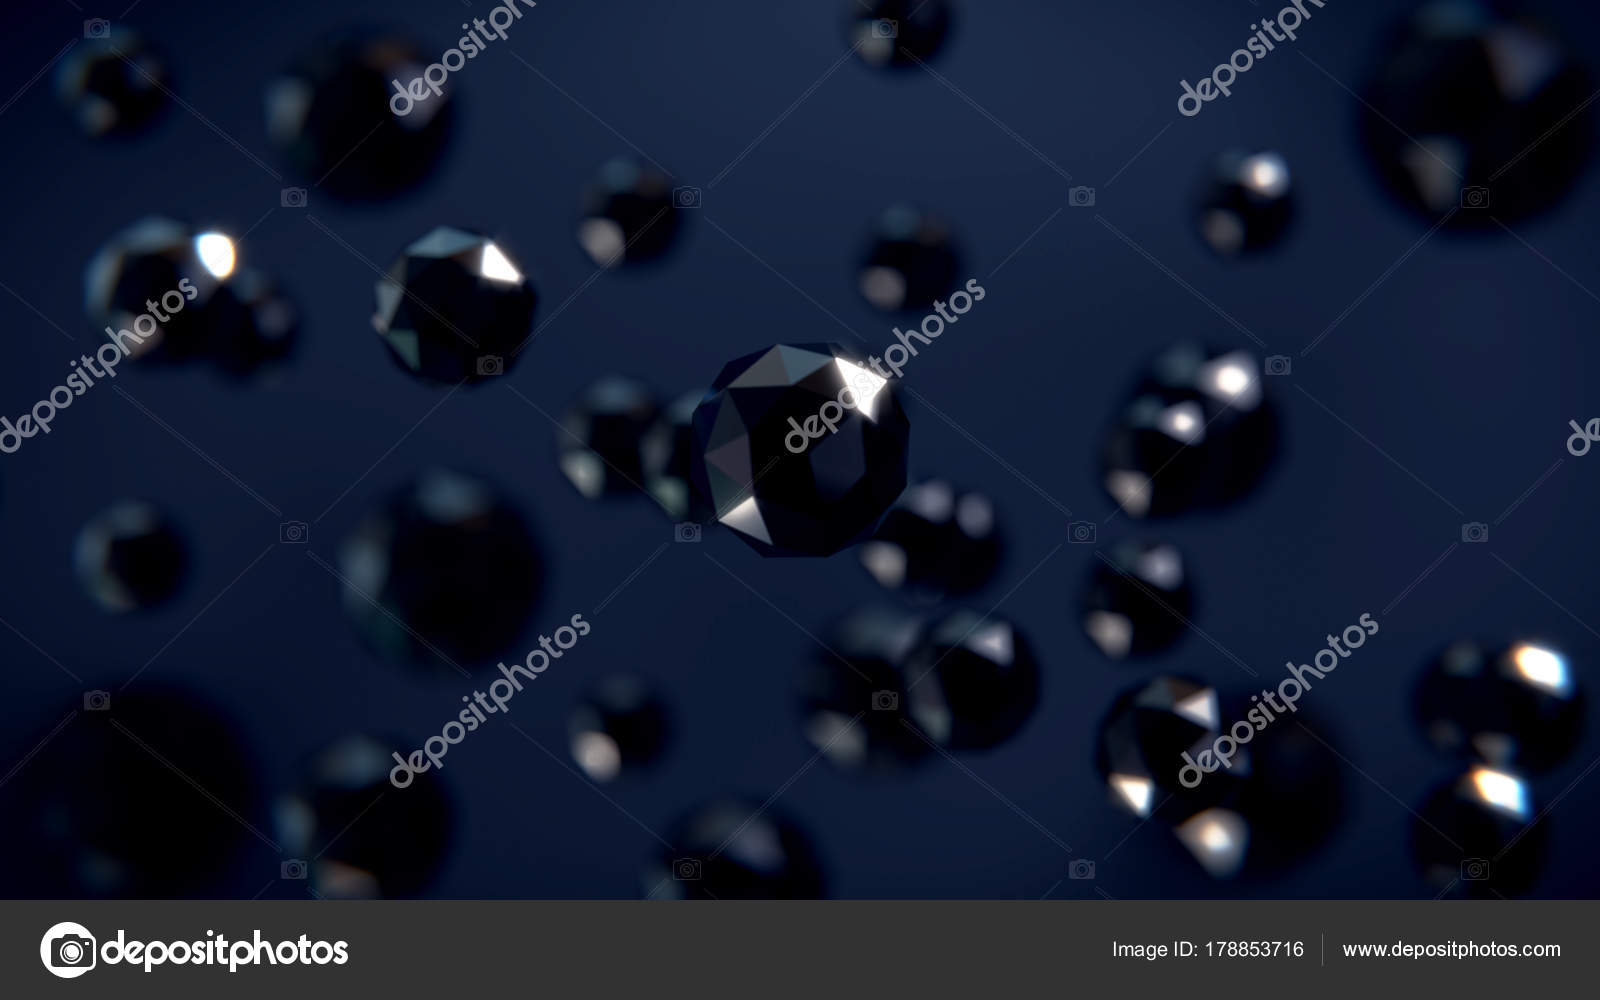 Abstract 3d Dark Background With Geometric Shapes Desktop Wallpapers Photo By Lapotnik